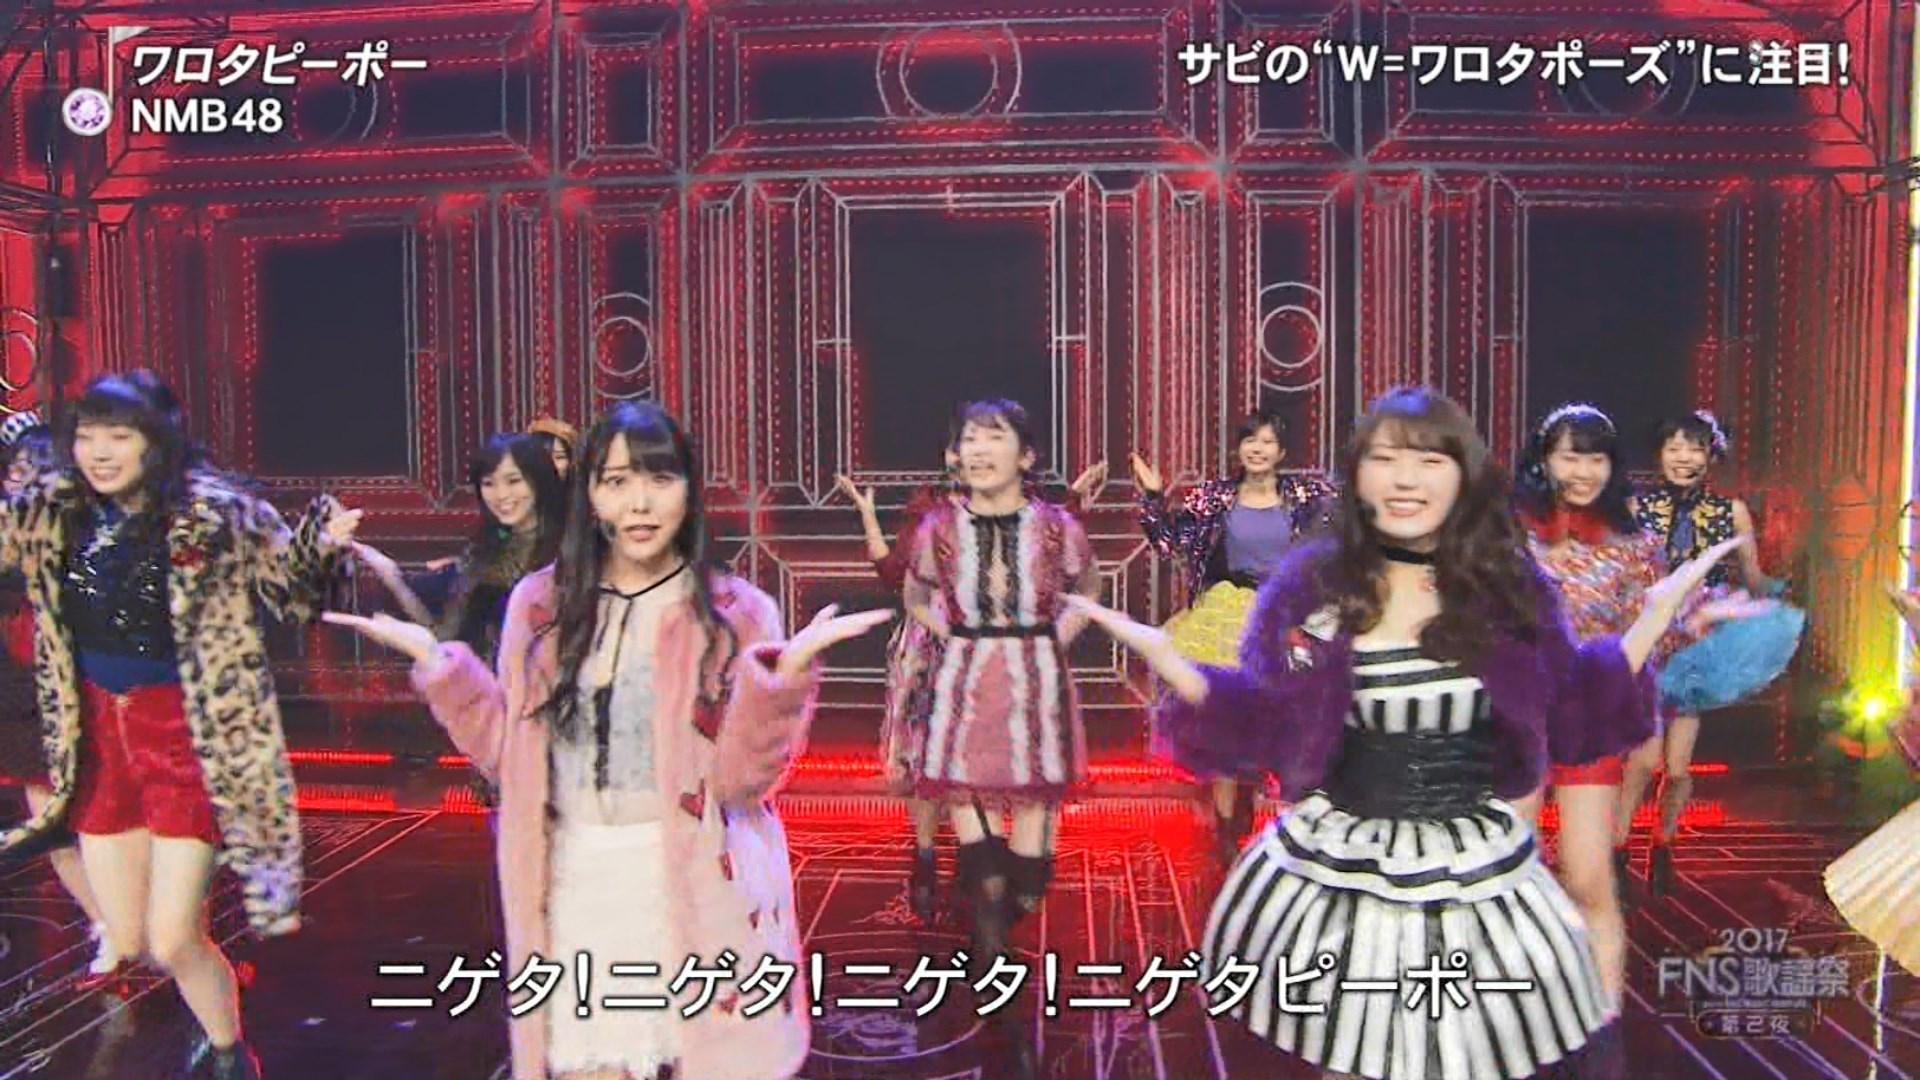 2017FNS歌謡祭第2夜・NMB48ワロタピーポーキャプ-079